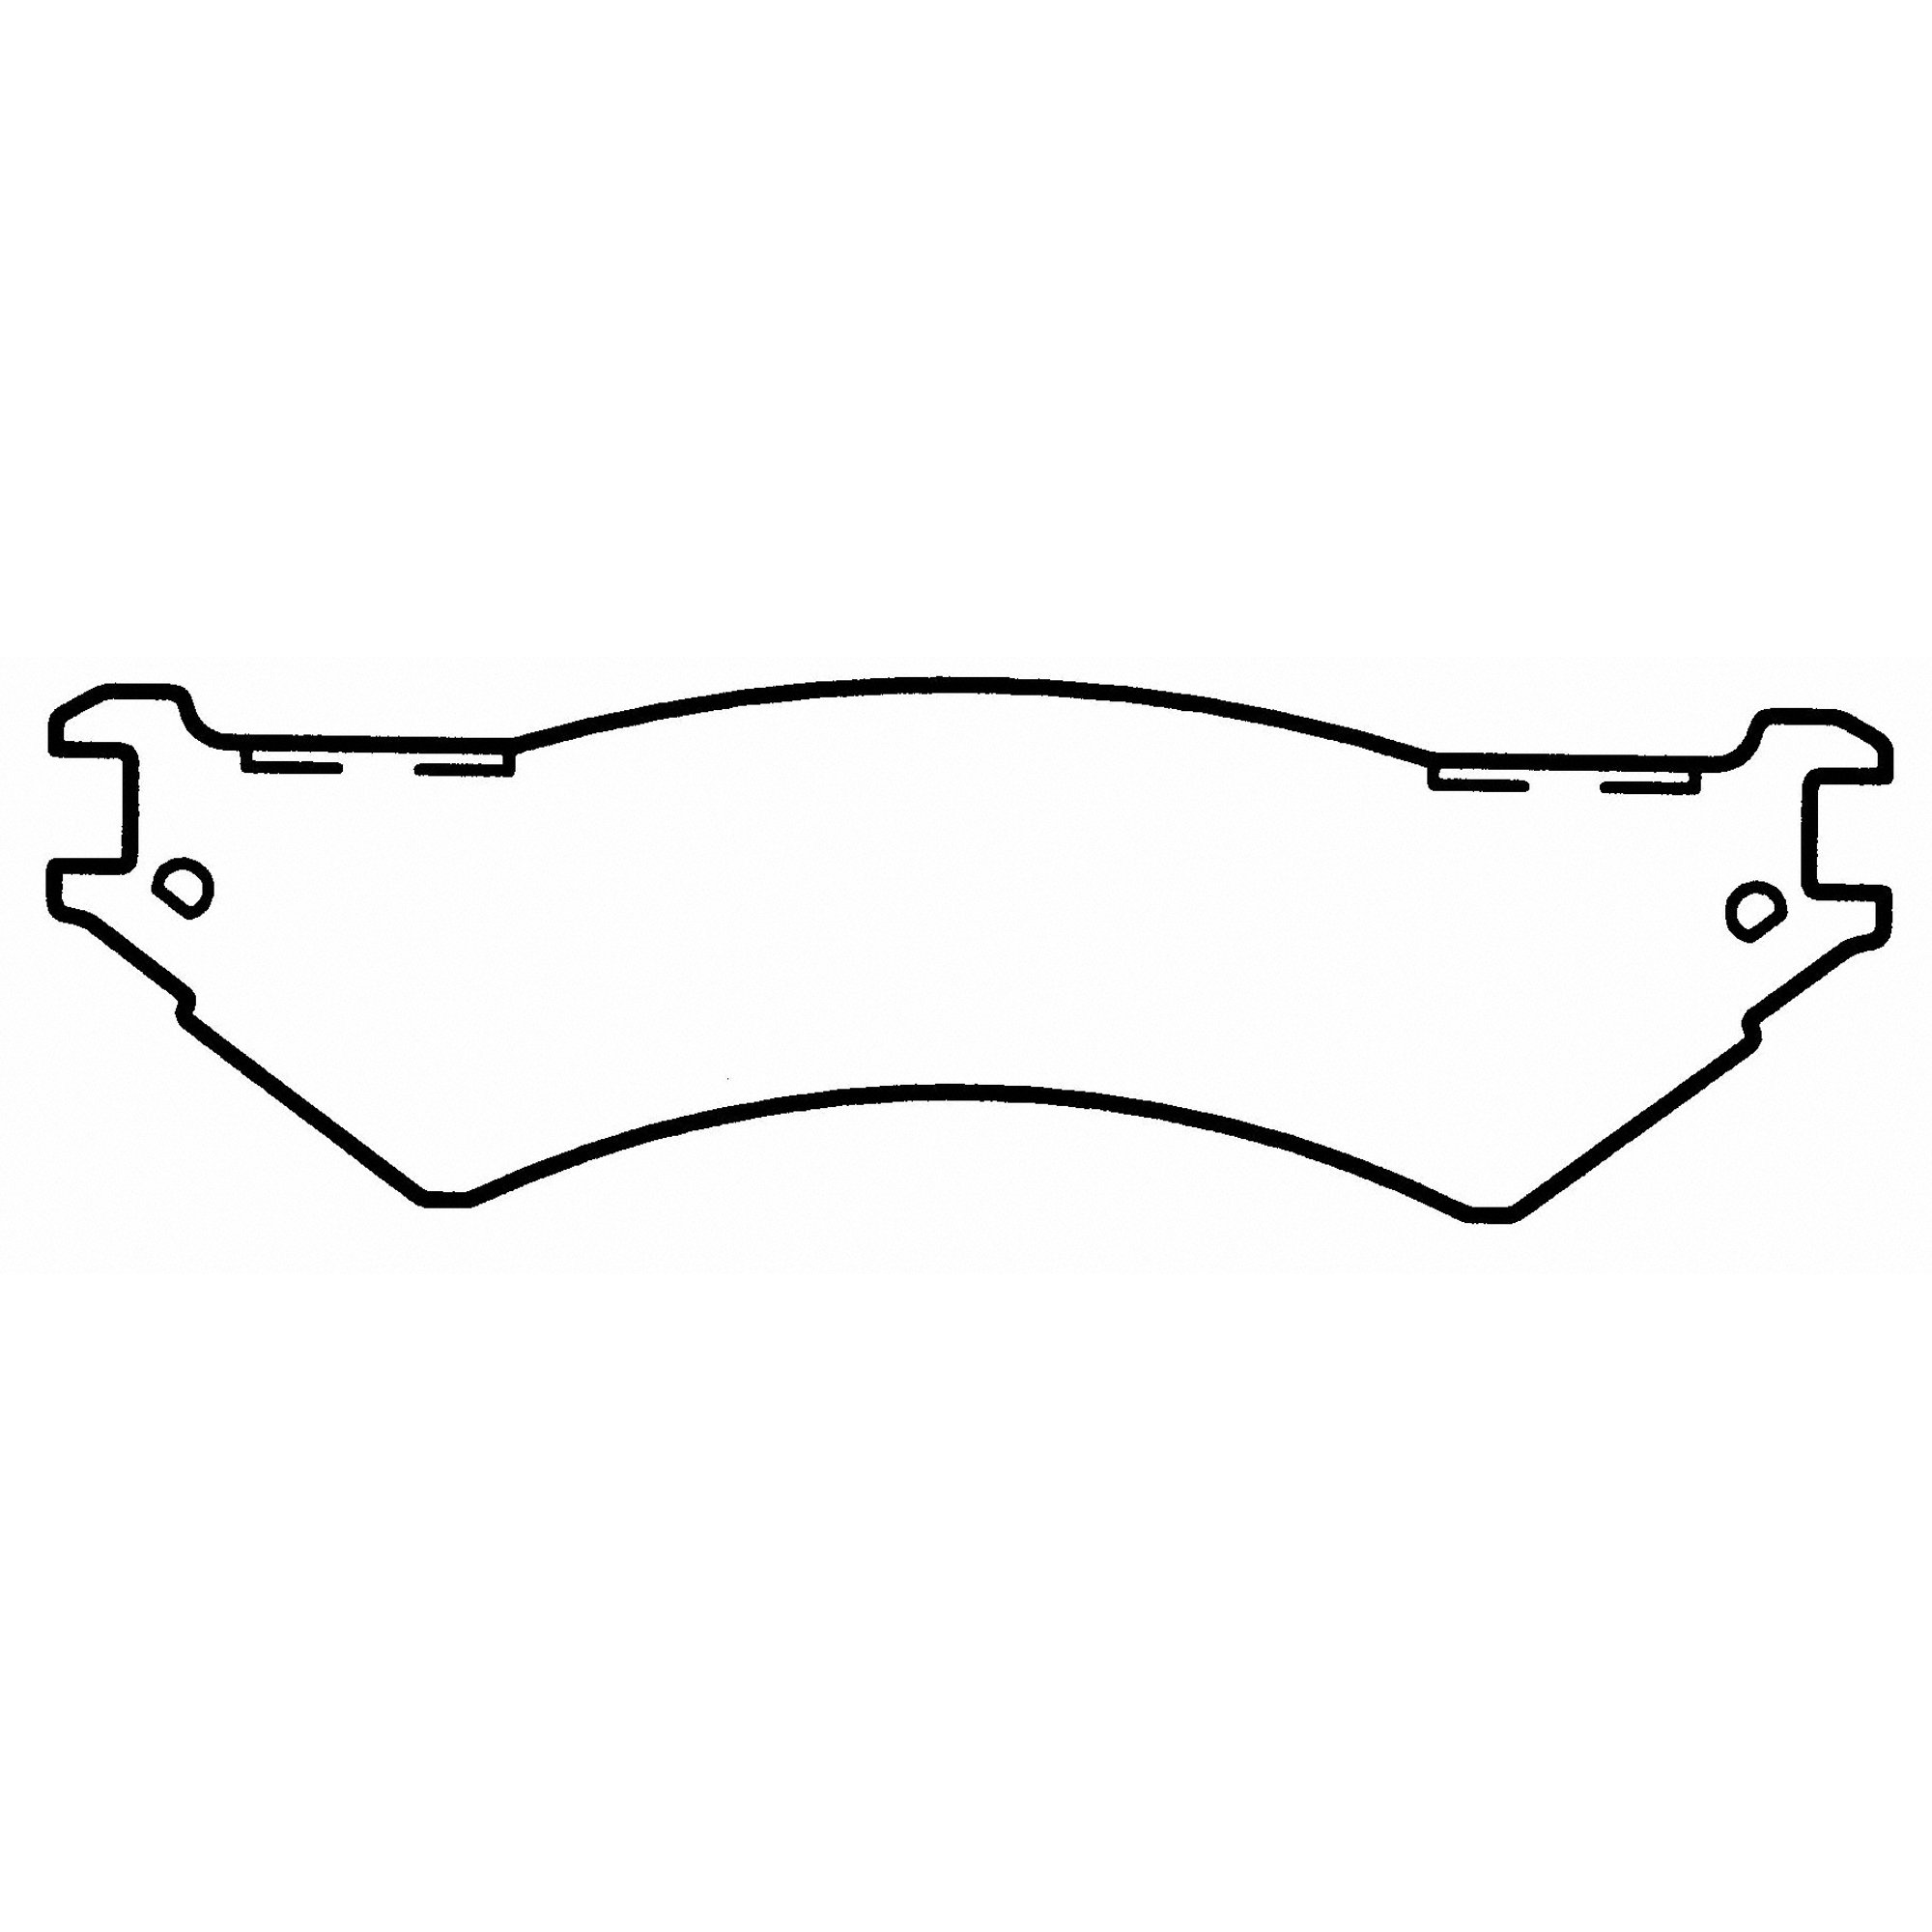 Buick Riviera 2 Door Hardtop 6 Bow Acme Auto Headlining 64-1113-TIE770 Black Replacement Headliner